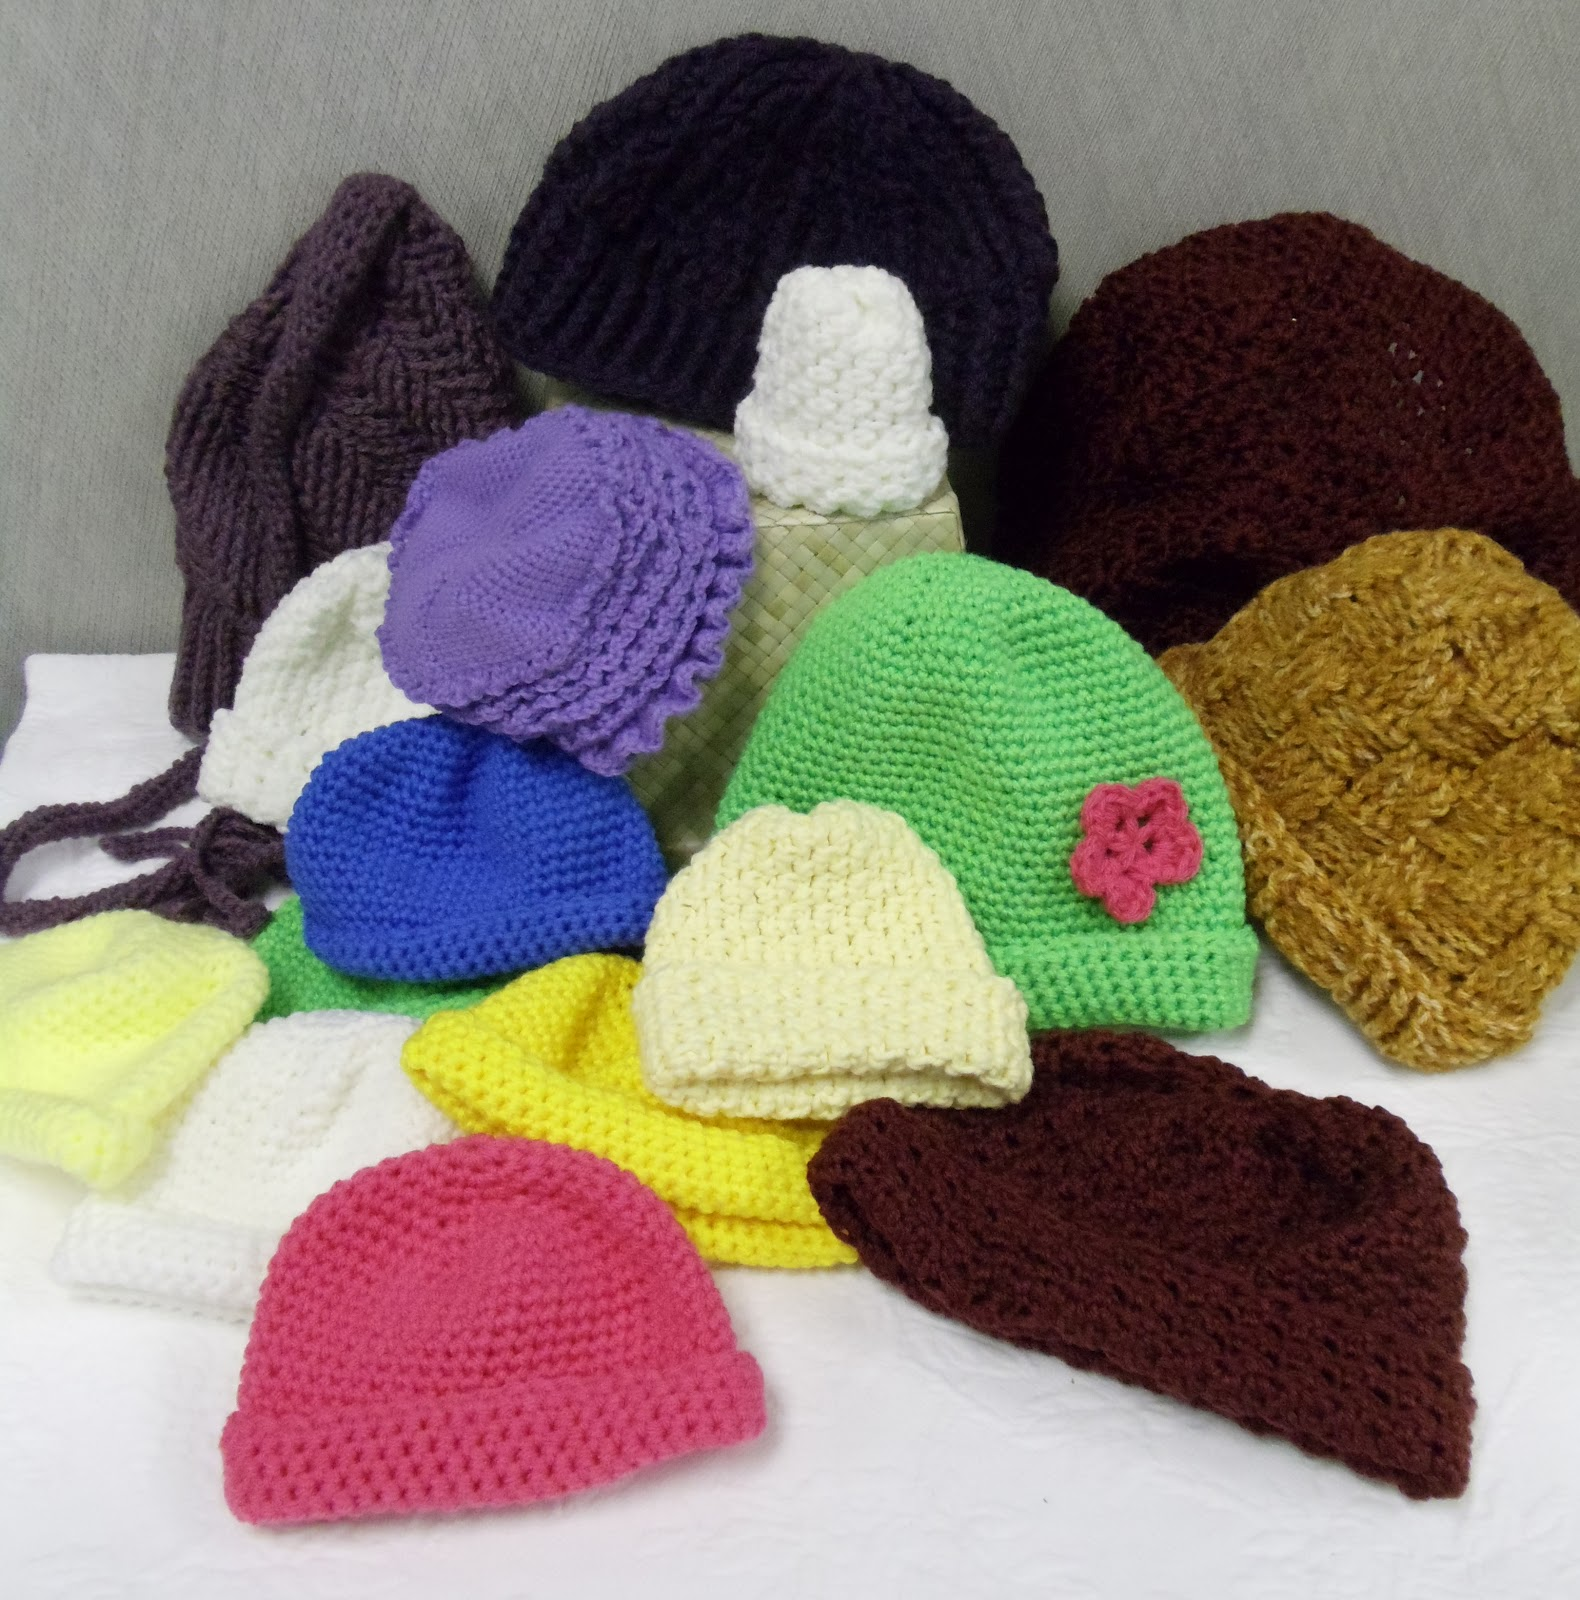 Crochet For Charity : Everyday Life at Leisure: Crocheted Hats for Charity